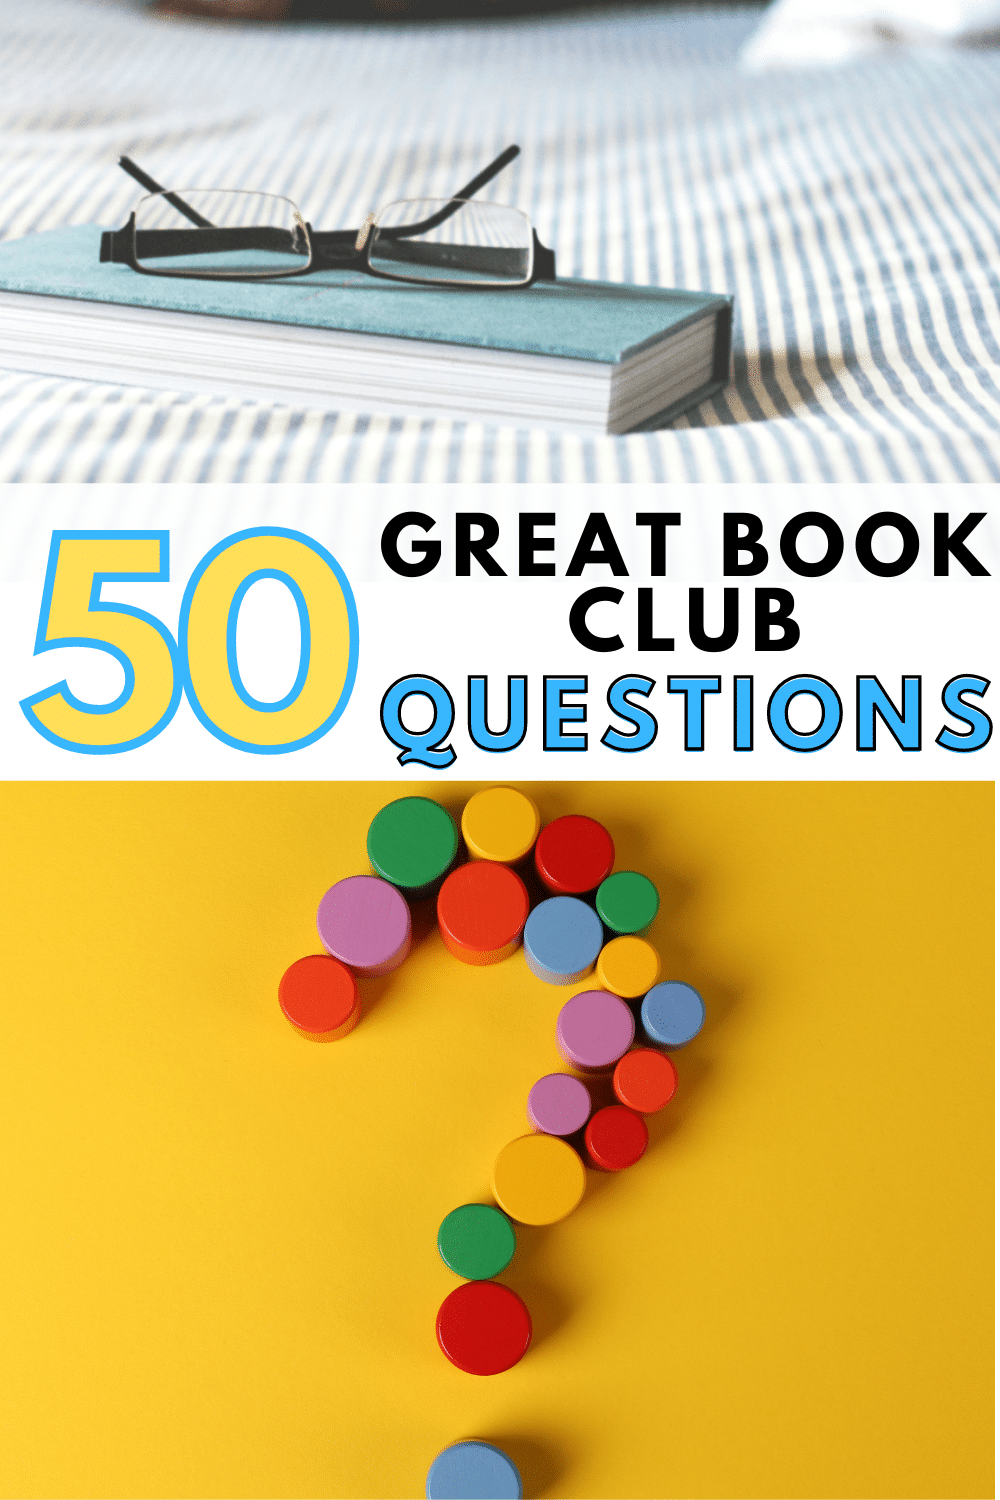 Make every book club discussion a meaningful one with these simple, but compelling book club questions that work for any book. #bookclub #books via @wondermomwannab